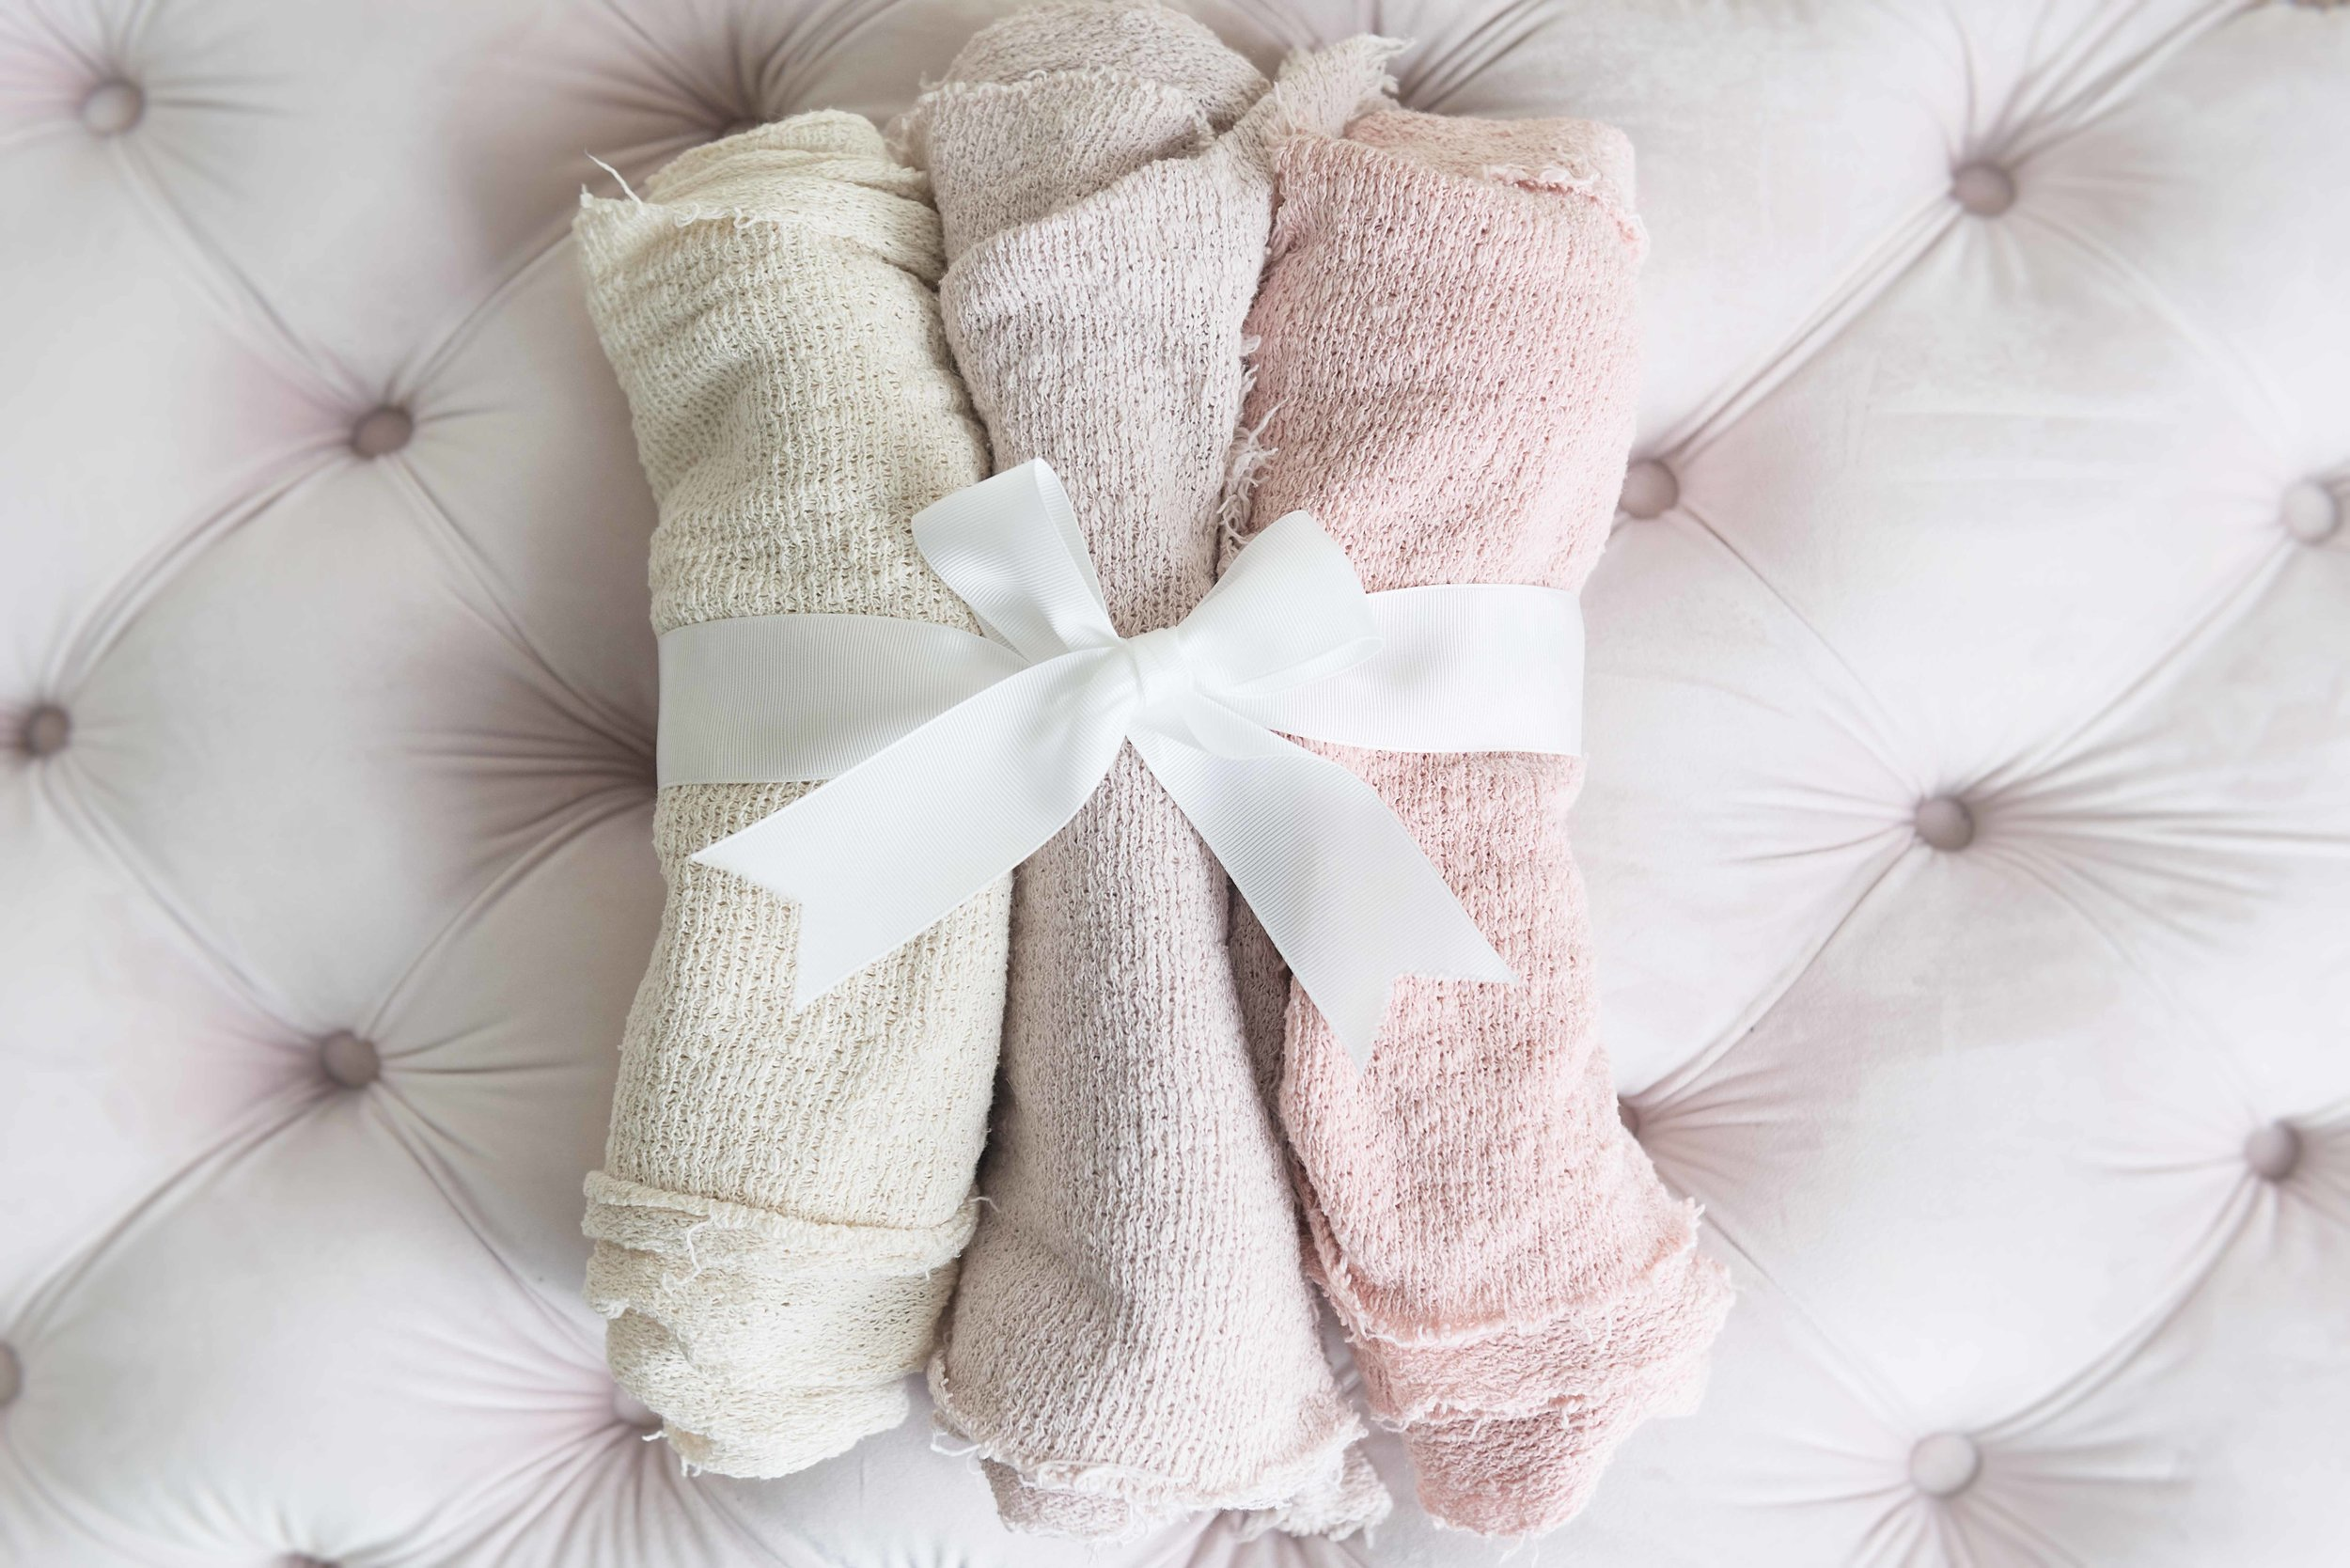 Our organic, textured newborn swaddles in neutral, lavender, and light pink